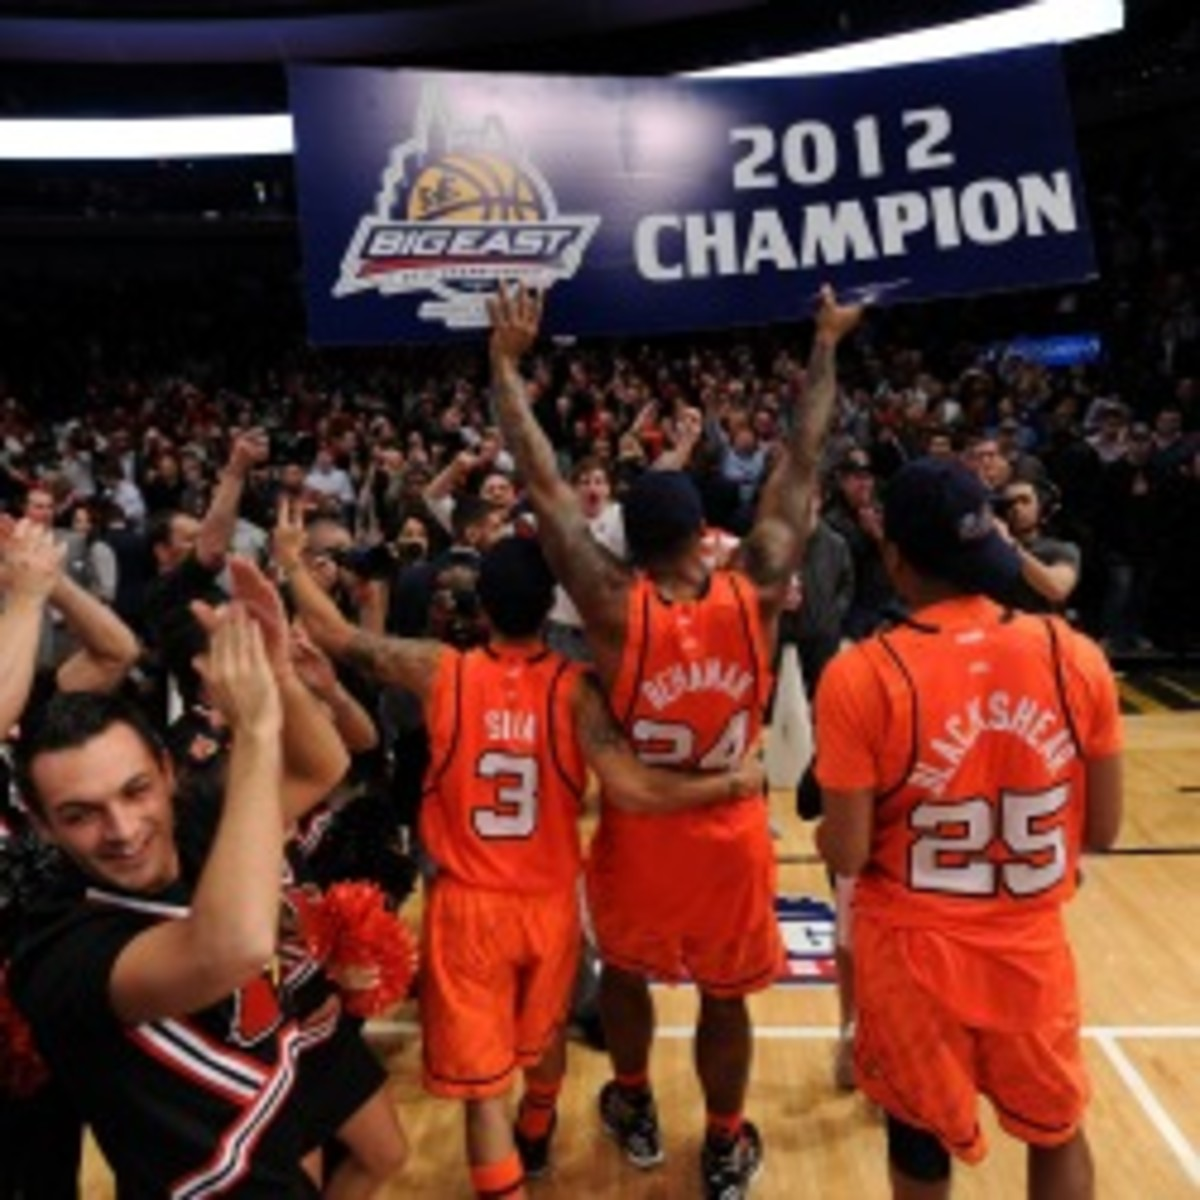 The Big East Conference basketball tournament in New York City could be in jeopardy. (Michael Heiman/Getty Images)